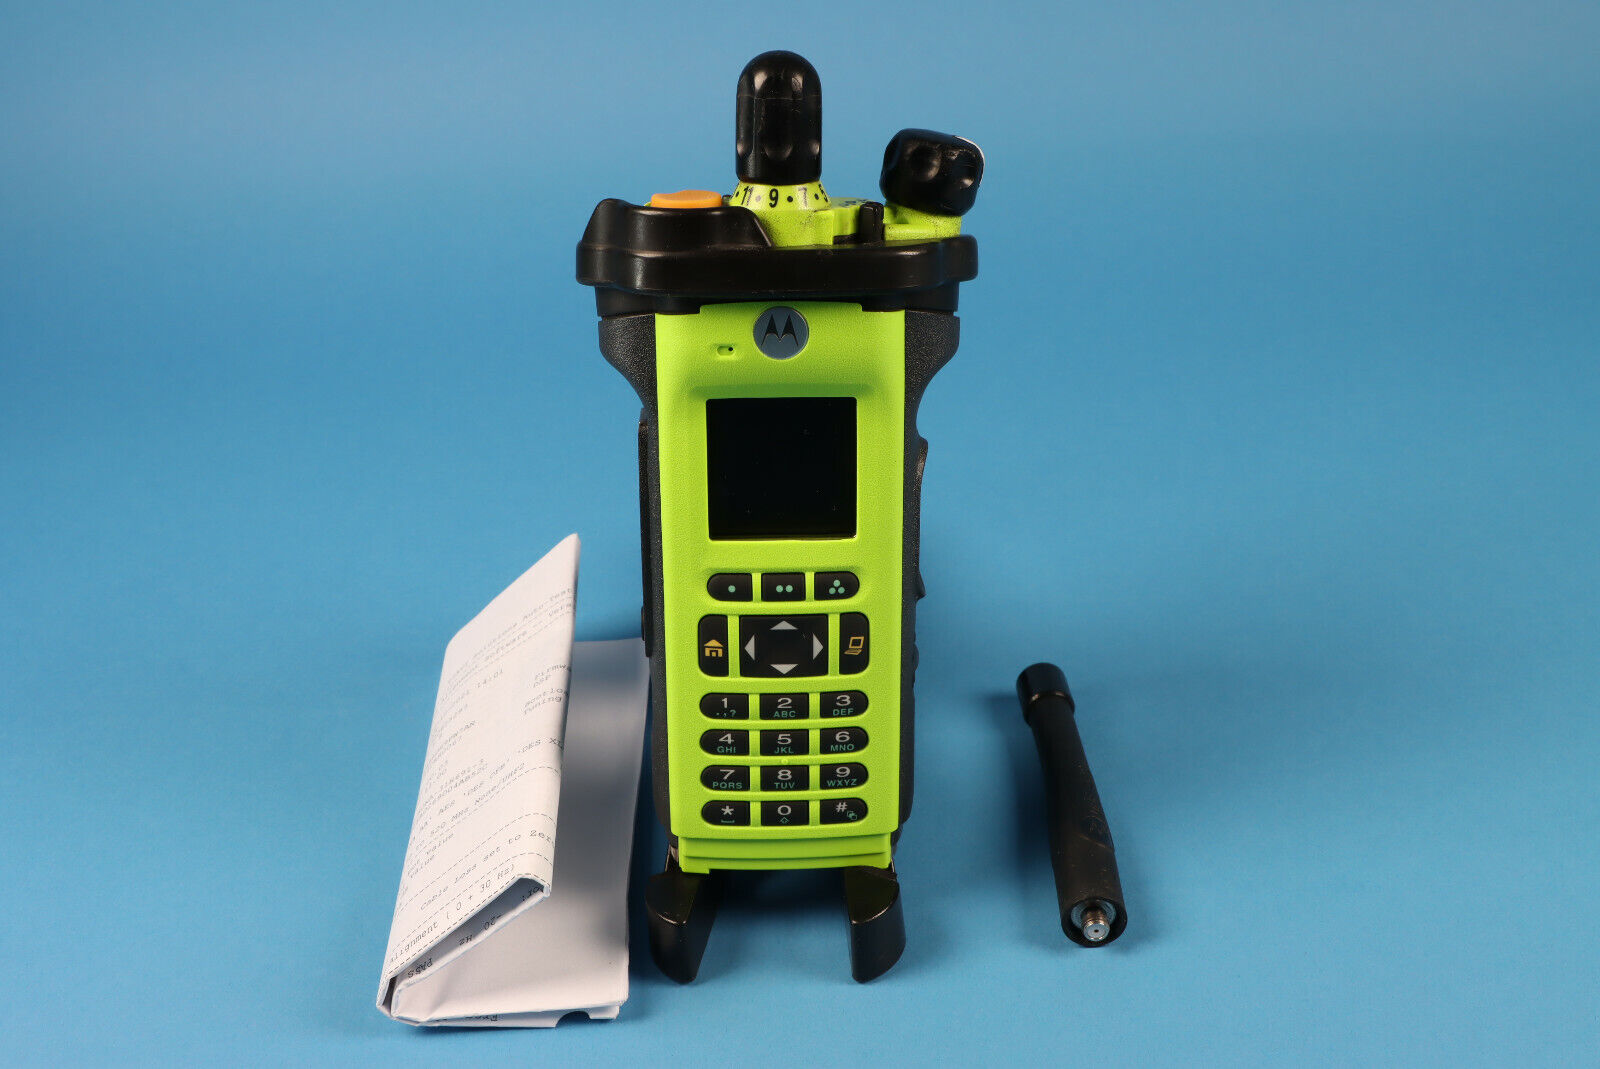 Motorola APX6000XE UHF R2 FPPw/ antenna Green/Black Housing with Tags. Buy it now for 1800.00